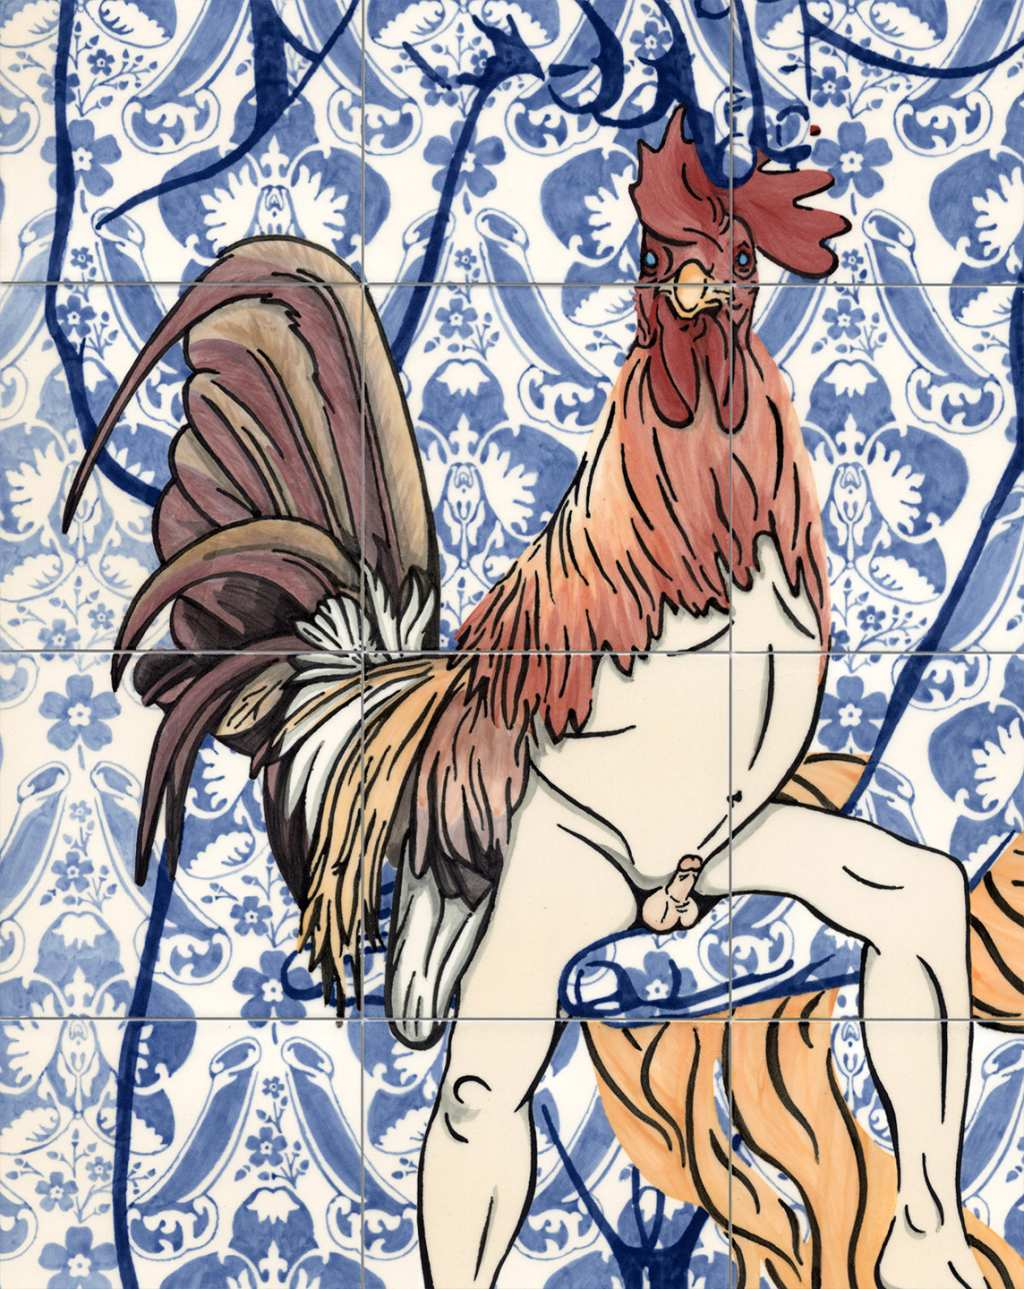 Dana Widawski · Venus and her magnificent cock  · 2017 · Hybrid creatures Nr. 4 · detail